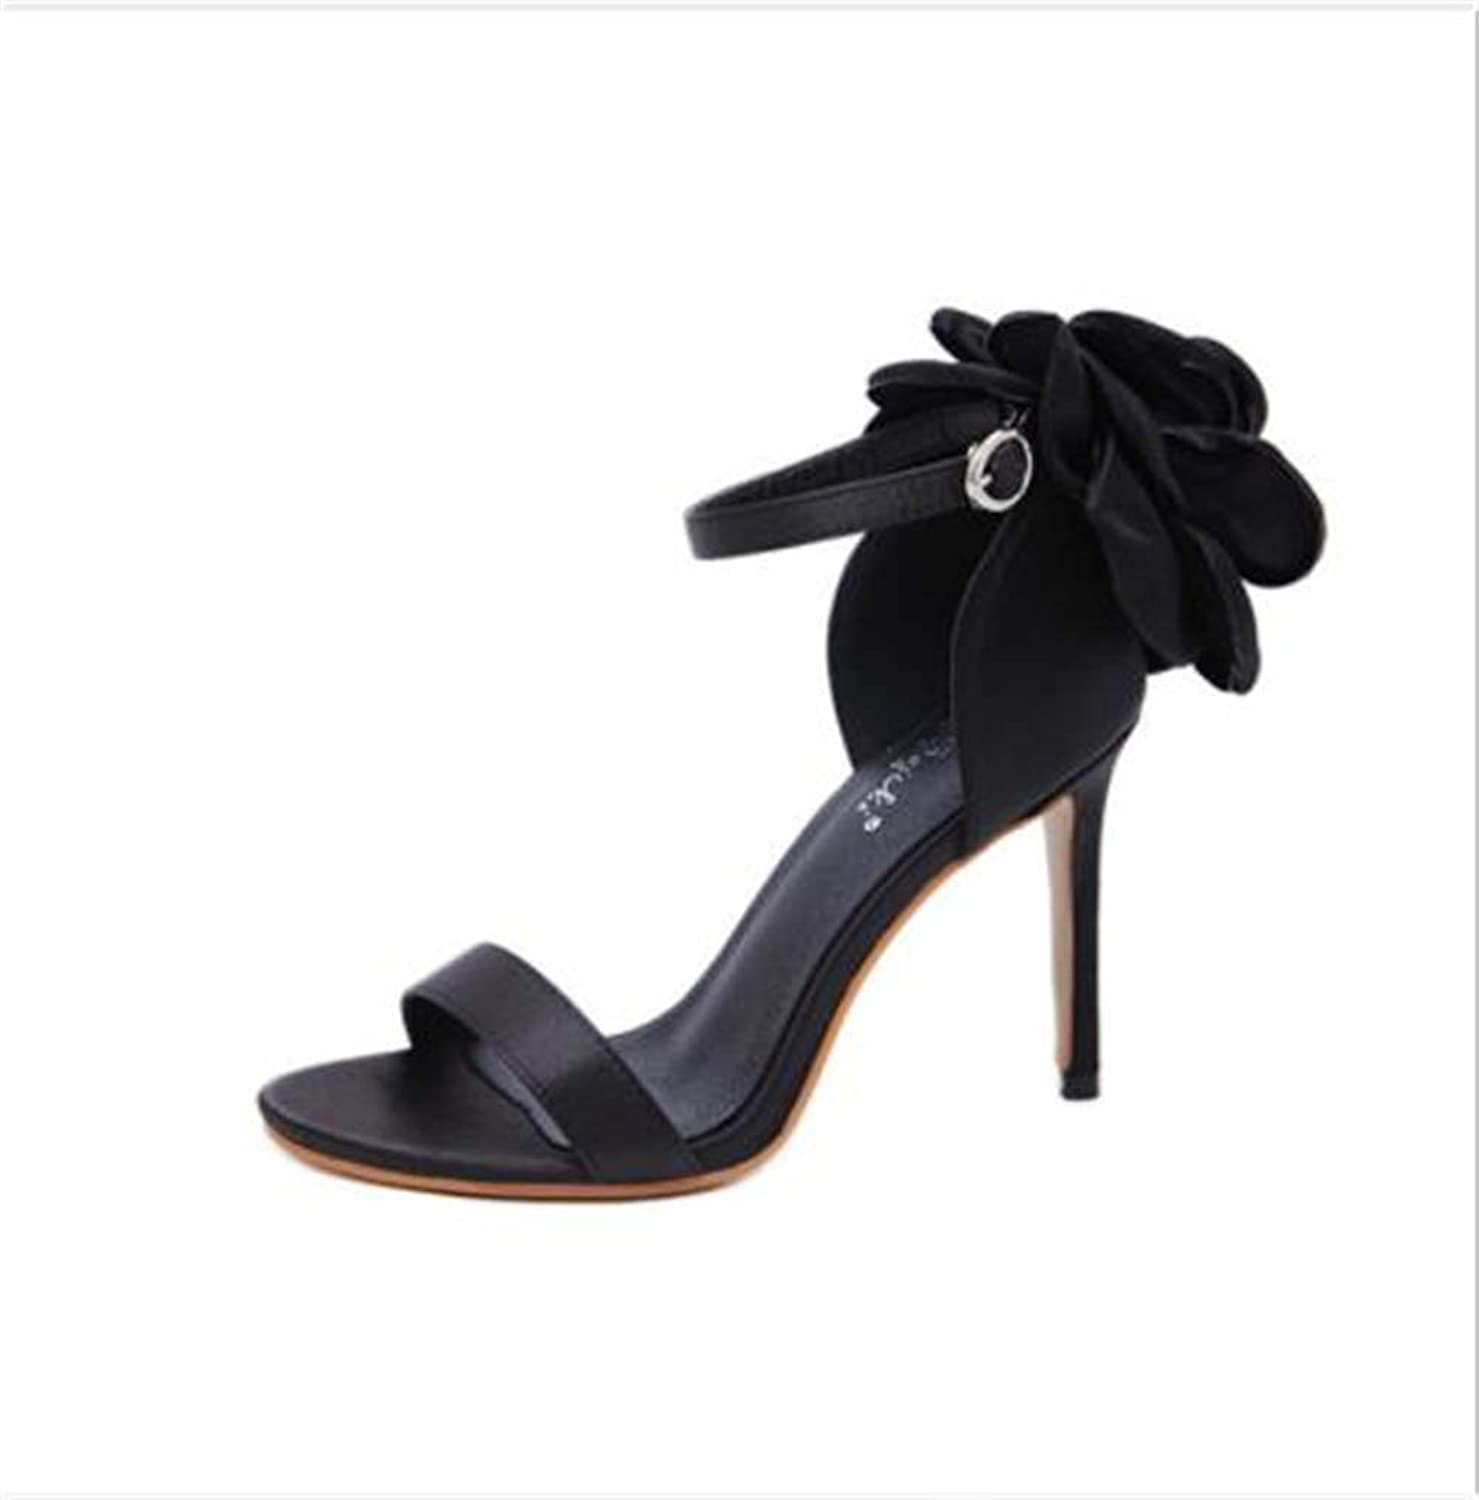 F1rst Rate Women's Sexy Strap Stiletto High Heel Pump Open Toe Ankle Strap Sandals